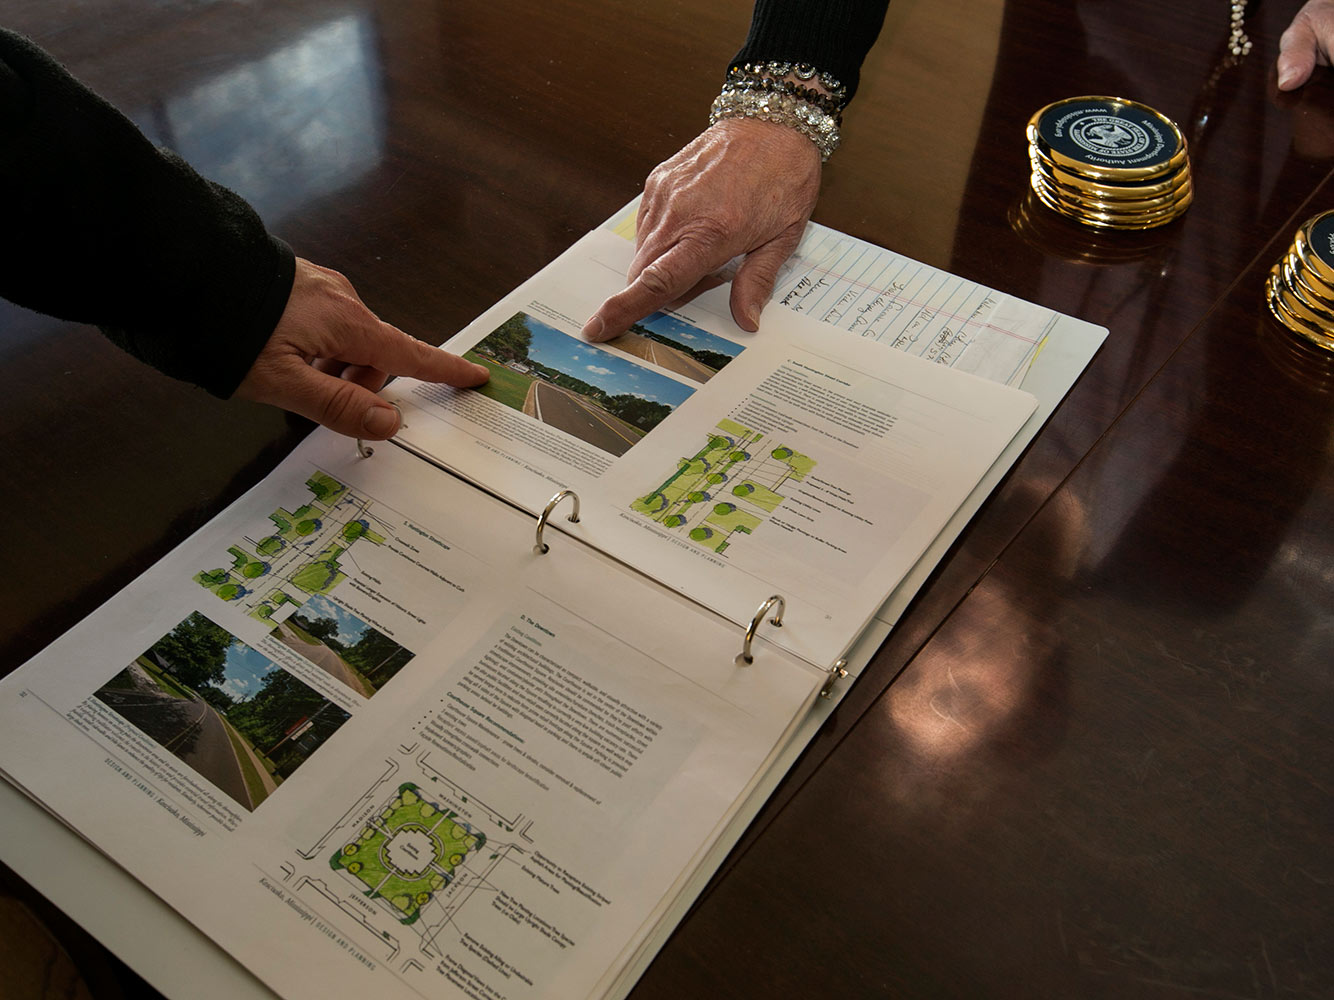 A binder with plans for the city is open on a table, and tow hands are pointing at a picture of a road in the binder.